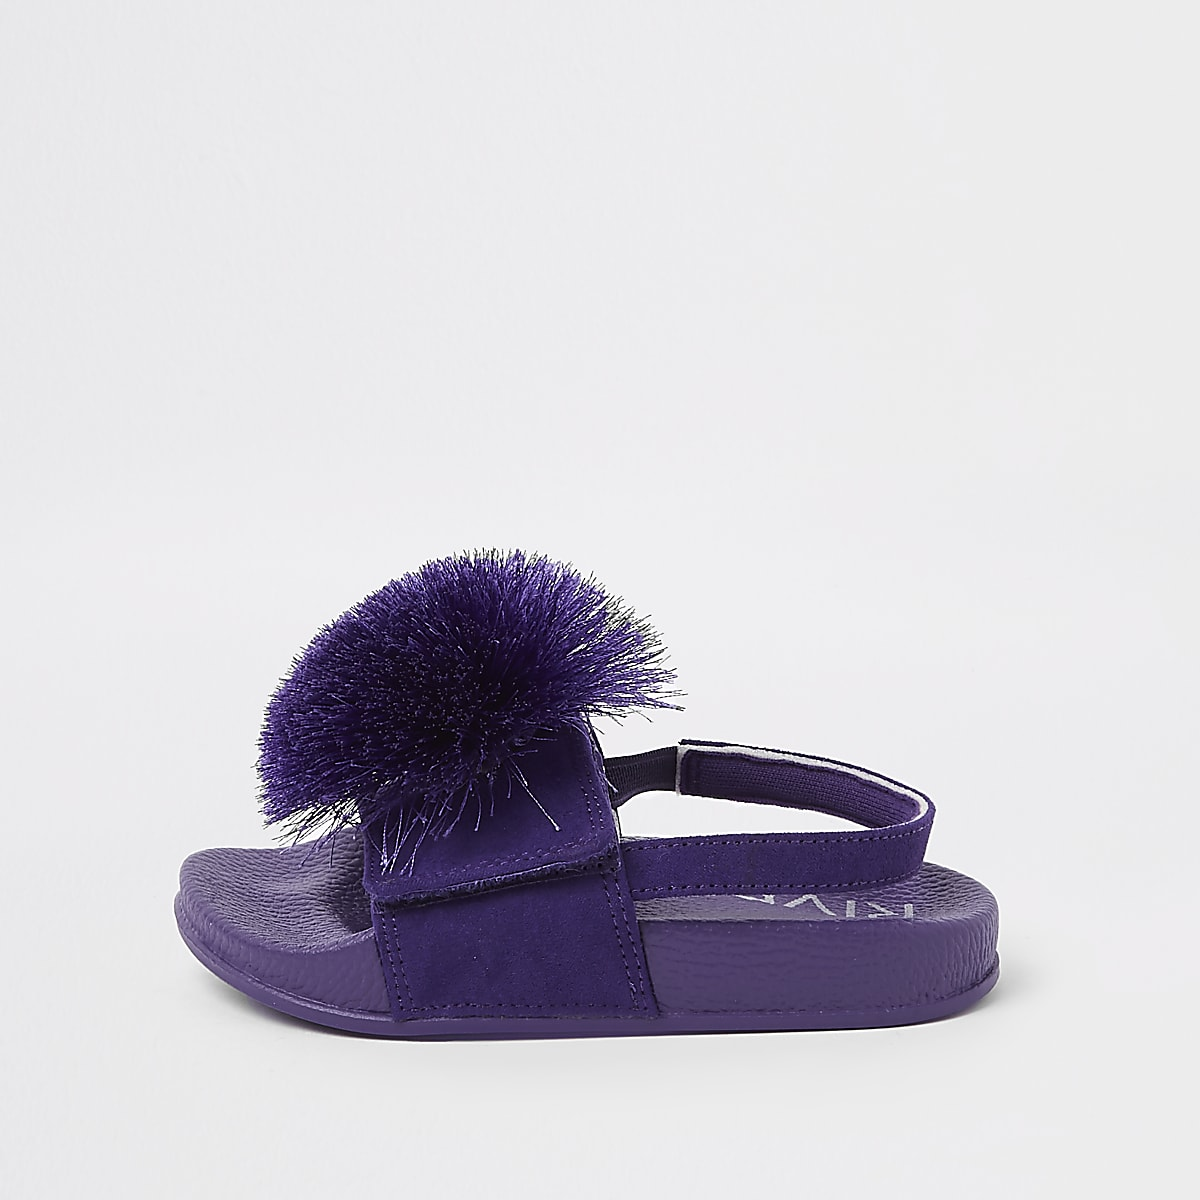 75001dbaf0ed Mini girls purple pom pom sliders - Baby Girls Sandals - Baby Girls Shoes    Boots - Mini Girls - girls